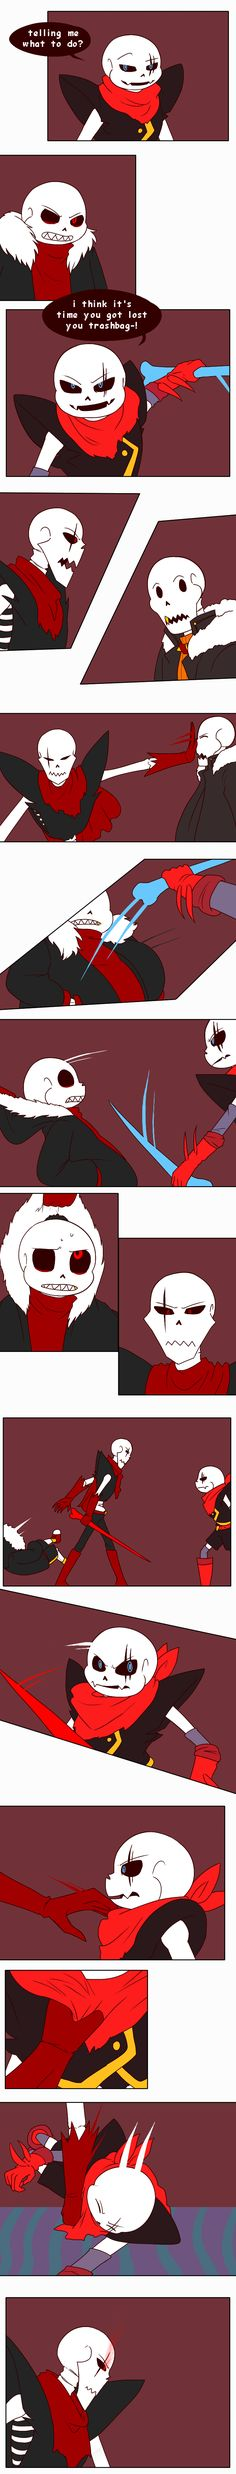 Previous: First: Last: First joke and first smile from Sans. Hhhhhhh.